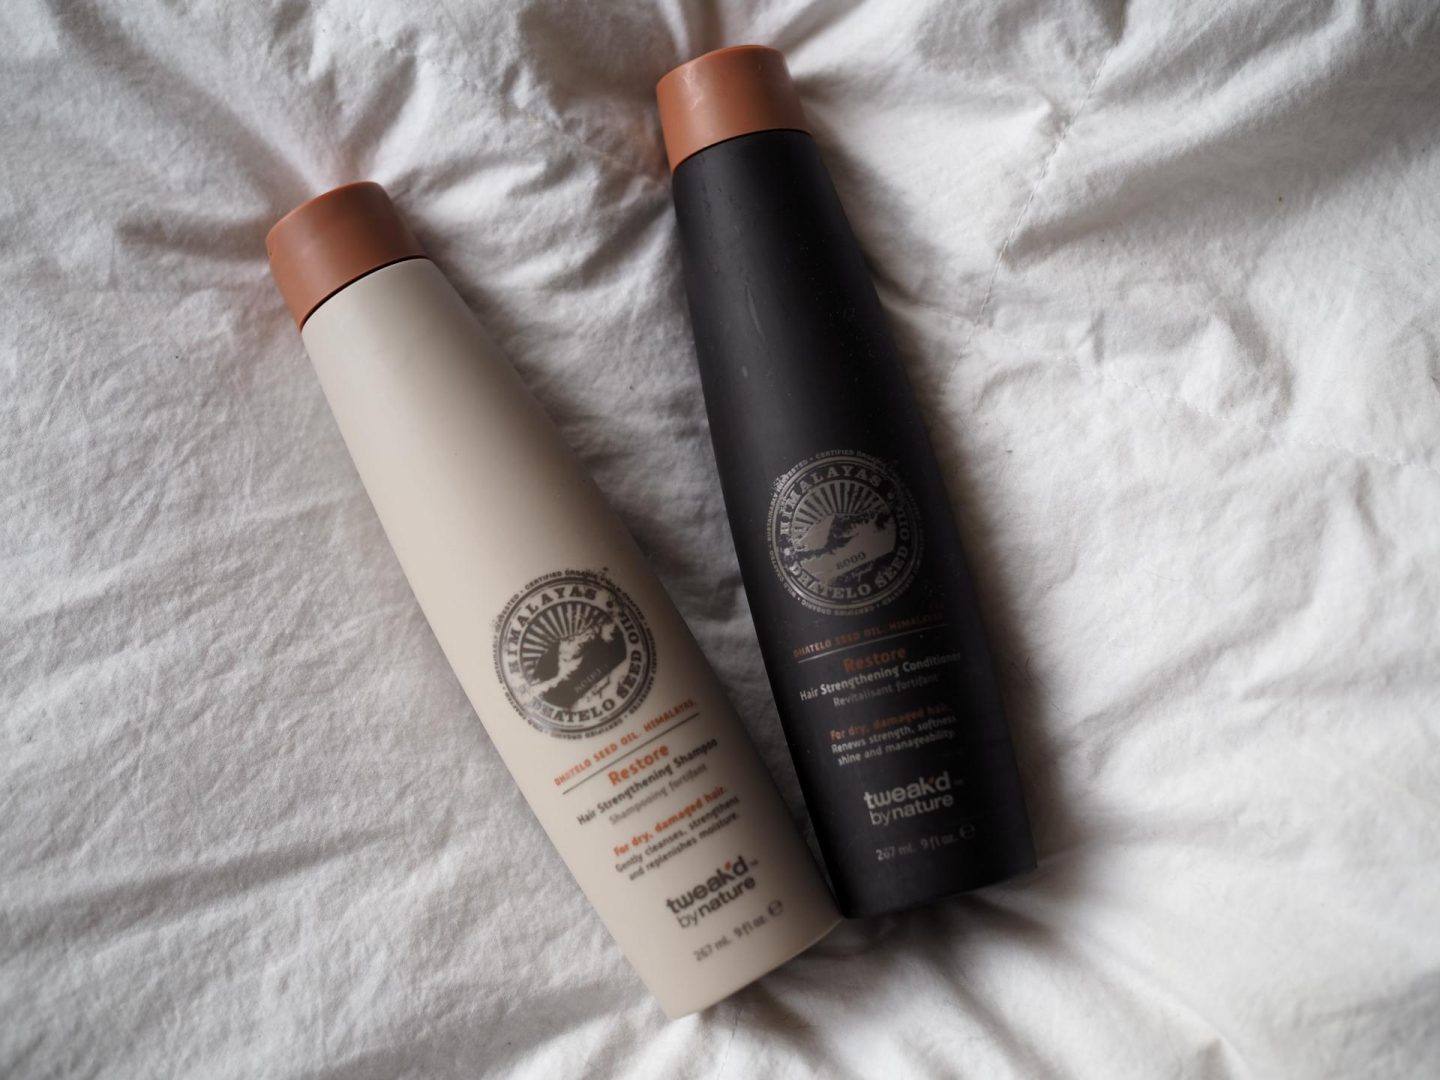 Tweak'd By Nature Restore Hair Strengthening Shampoo/Conditioner